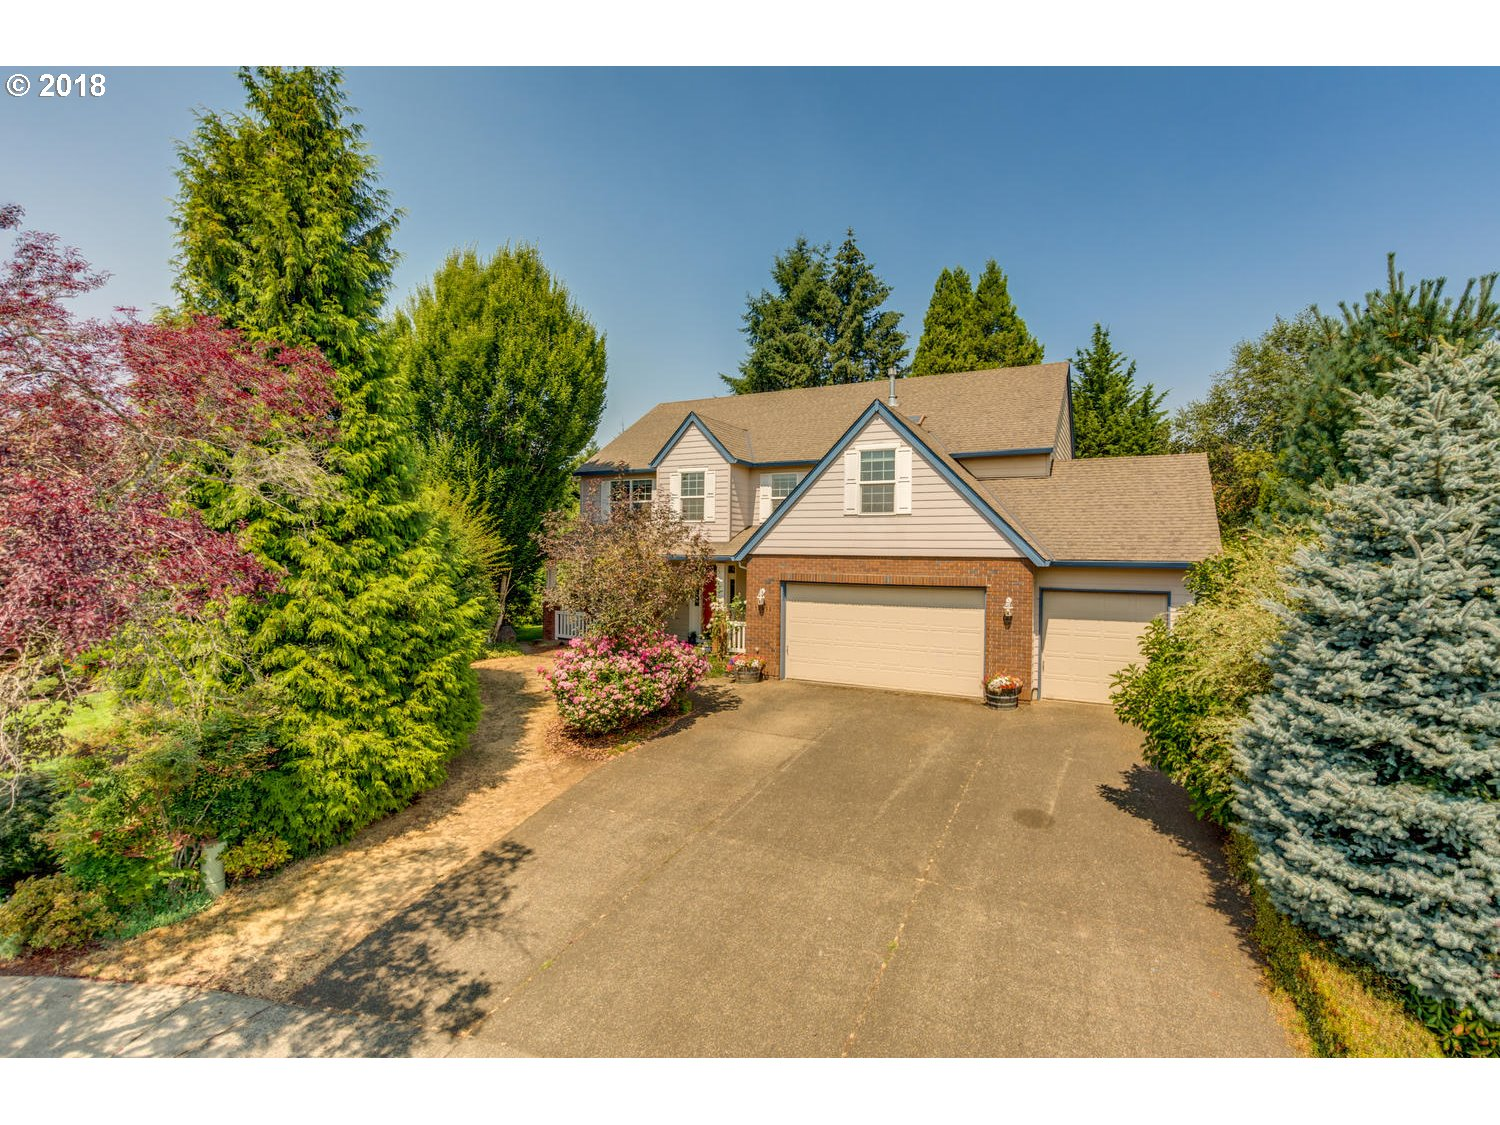 12052 MCCORD HEIGHTS CT Oregon City, OR 97045 - MLS #: 18676644